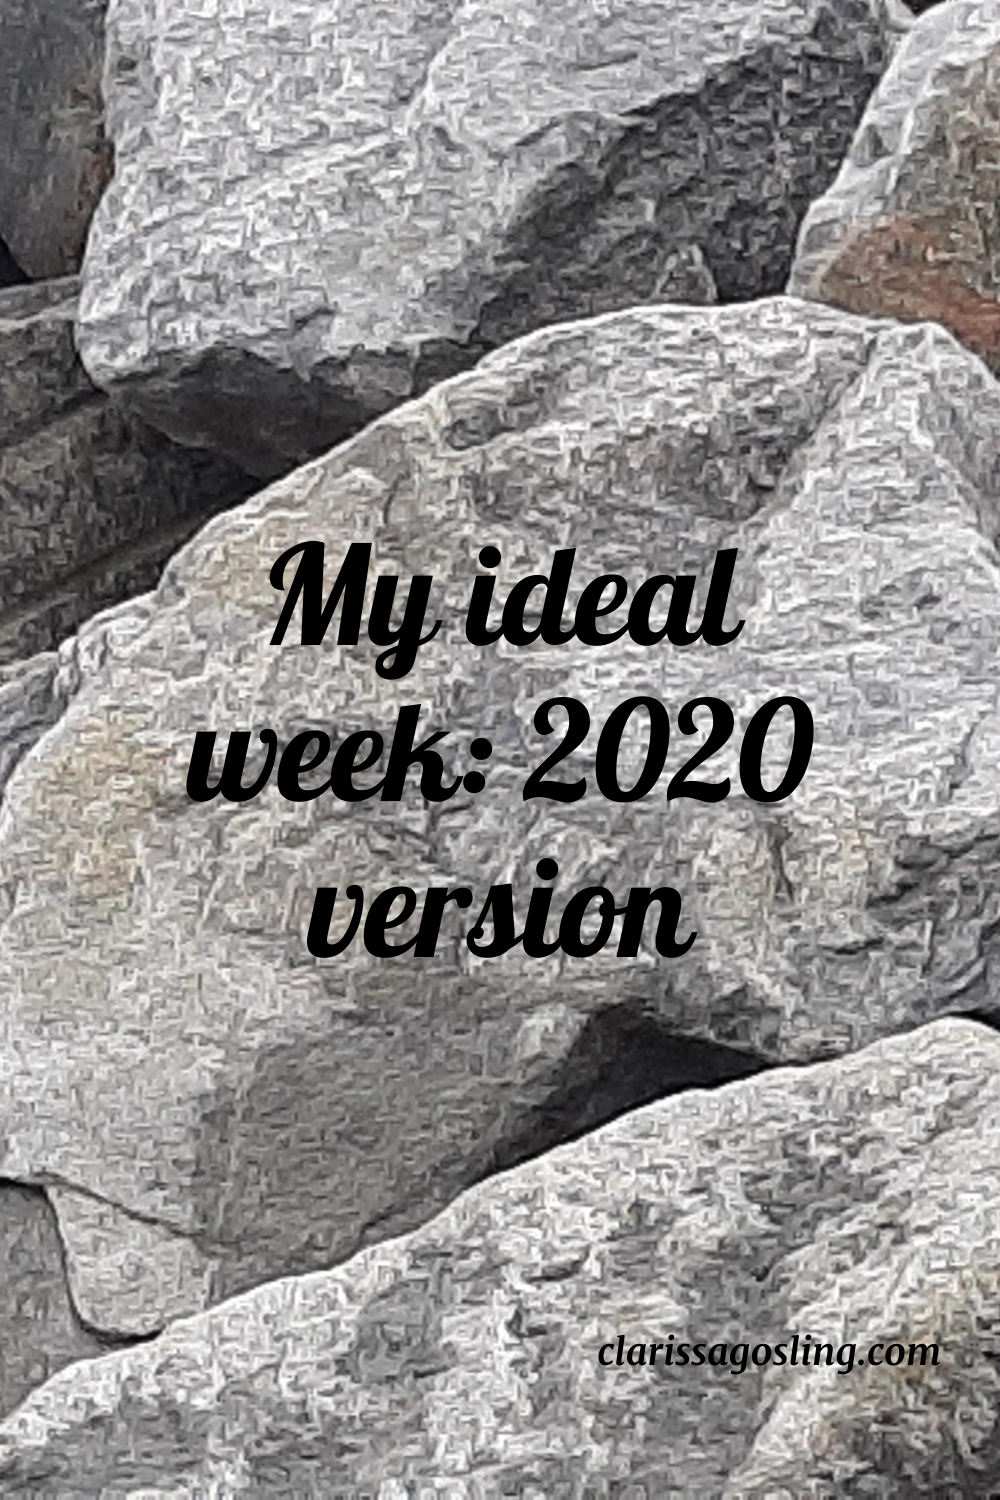 My ideal week: 2020 version